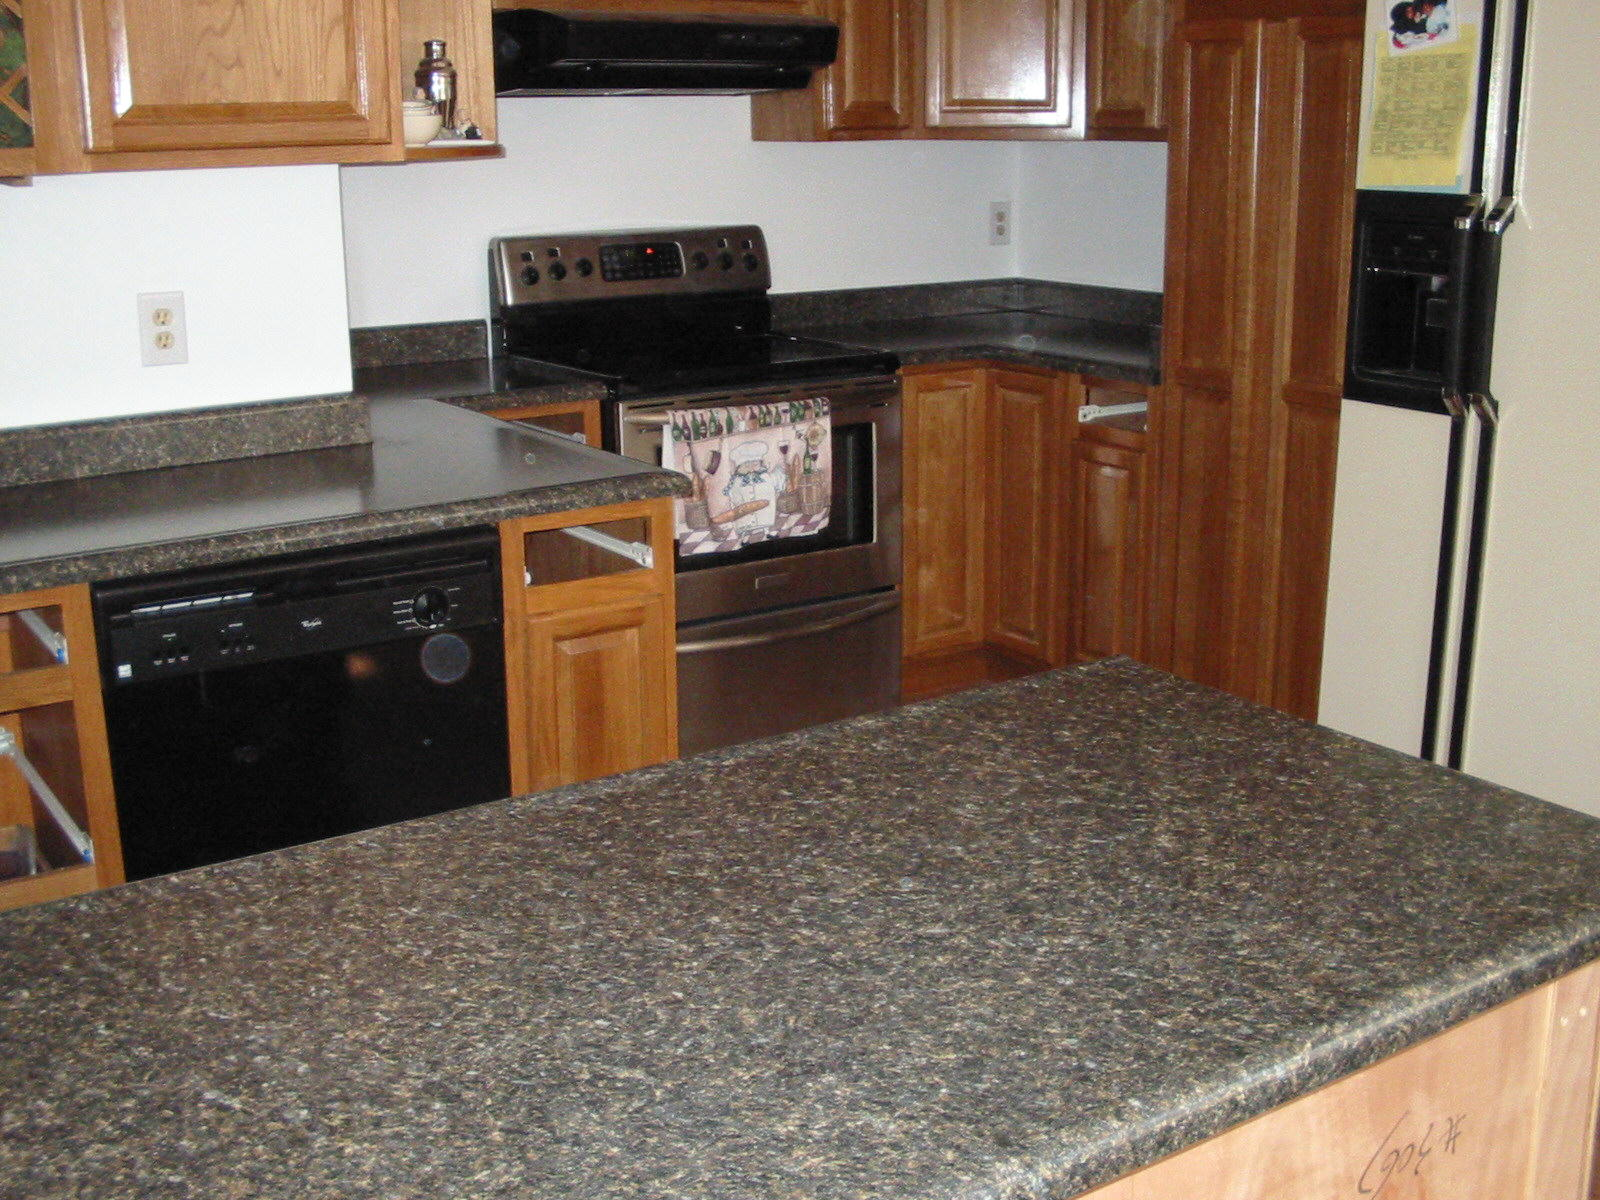 photo gallerylaminate laminate kitchen countertops Photo Gallery Laminate